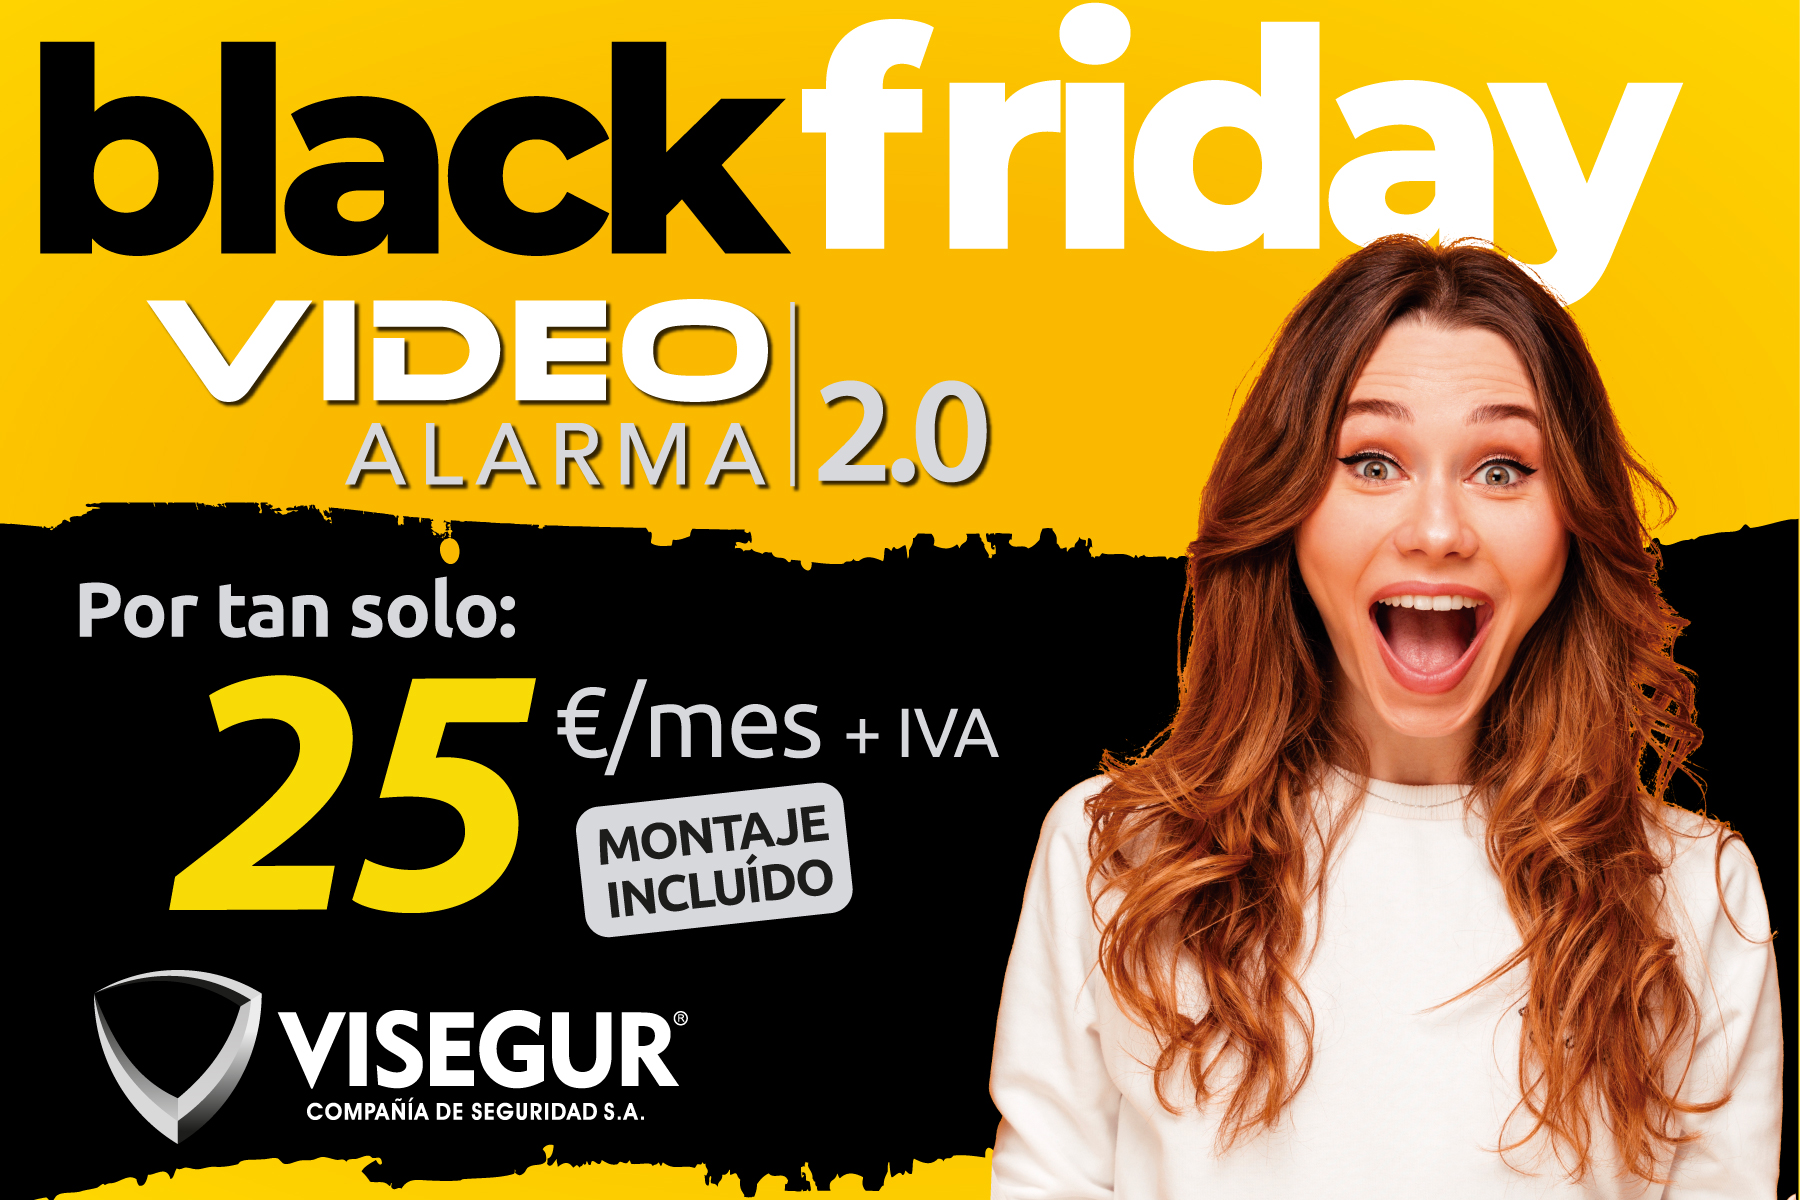 Video alarmas en Ciudad Real: nos adelantamos al Black Friday